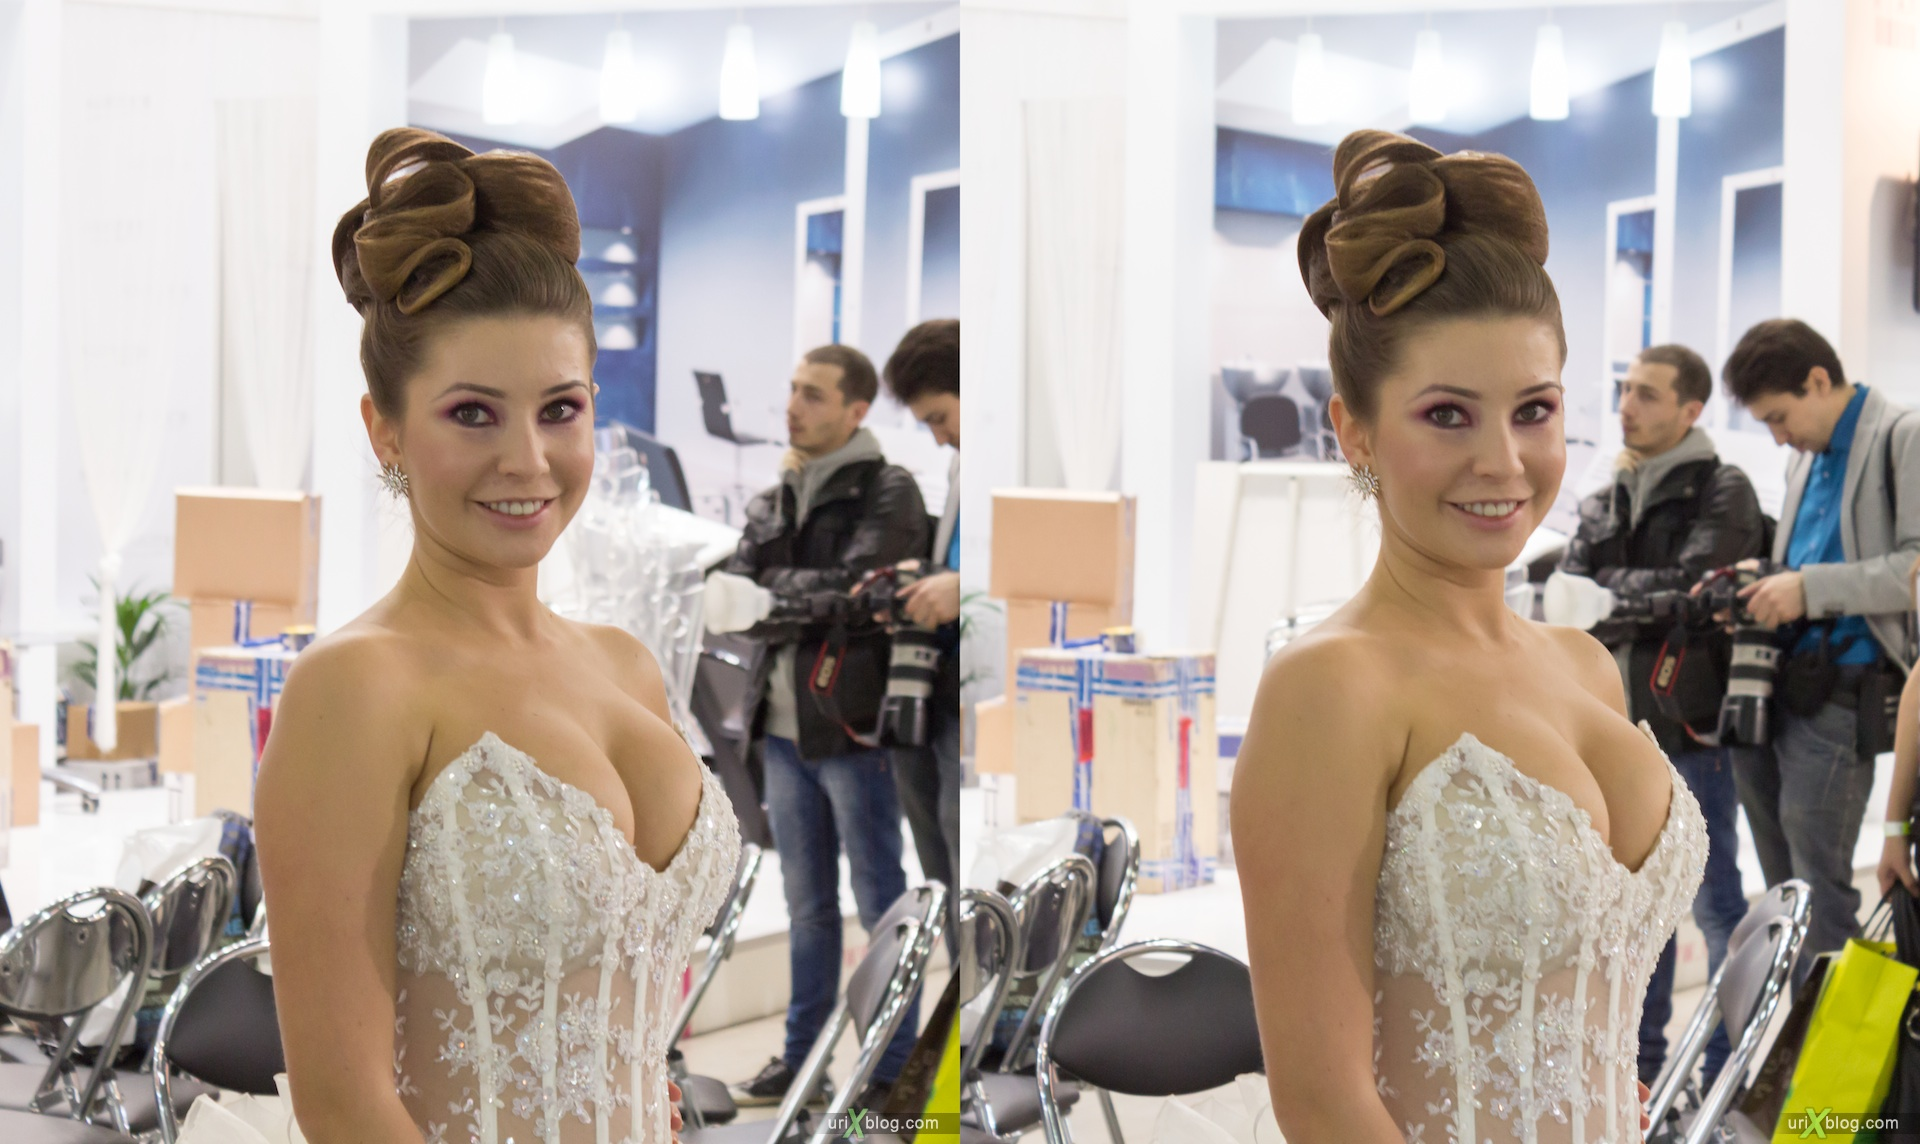 2012, interCharm exhibition, Crocus Expo, Moscow, girls, models, 3D, stereo pair, cross-eyed, crossview, cross view stereo pair